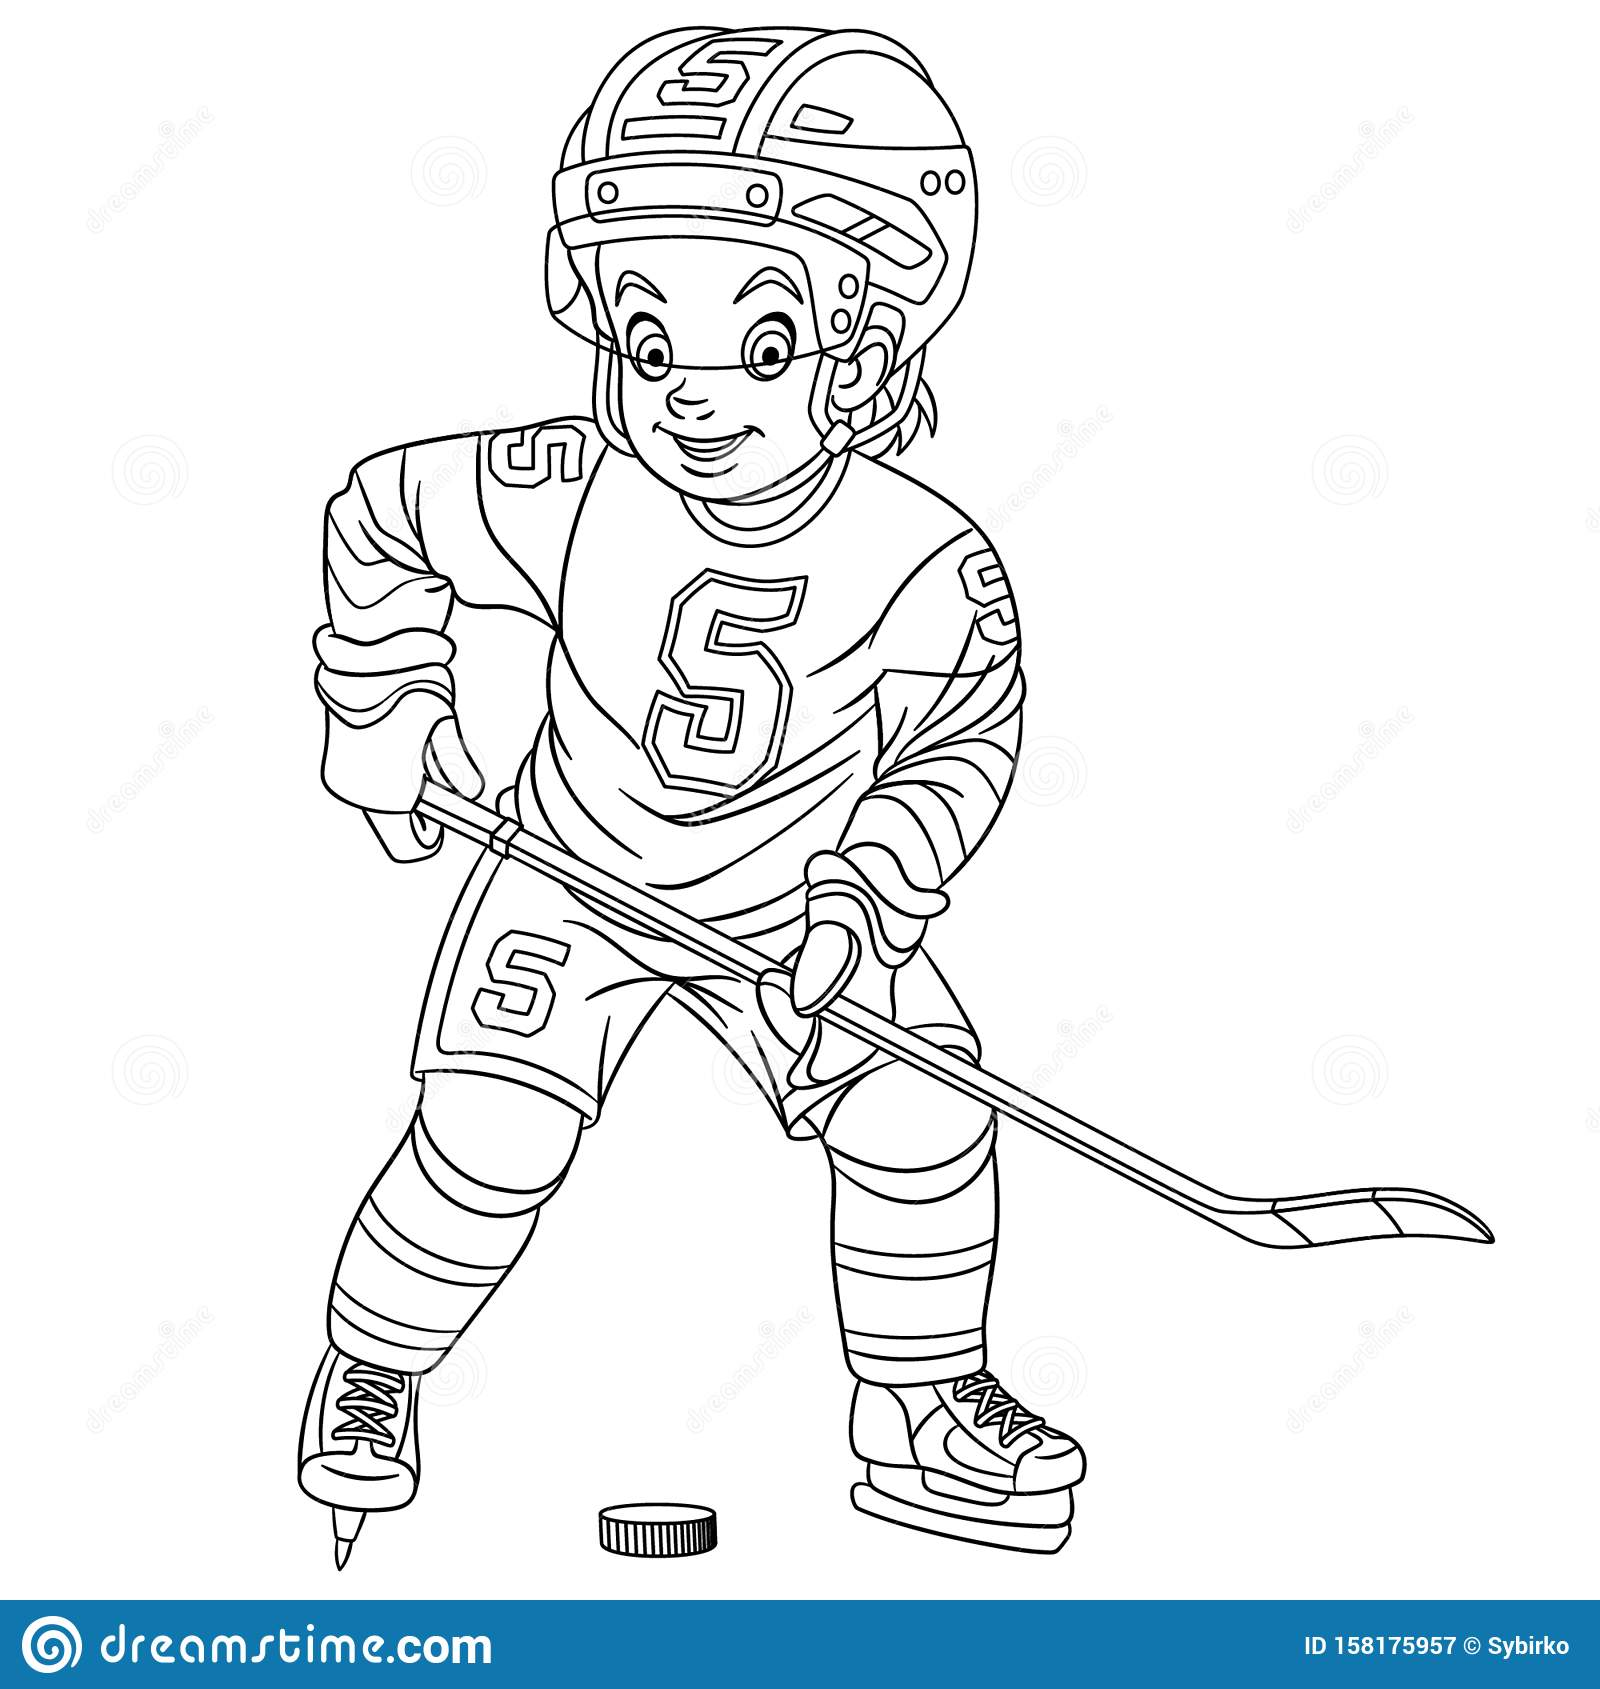 coloring with hockey player stock vector illustration of comic fast colouring cute boy coloring pages Hockey Player Coloring Page